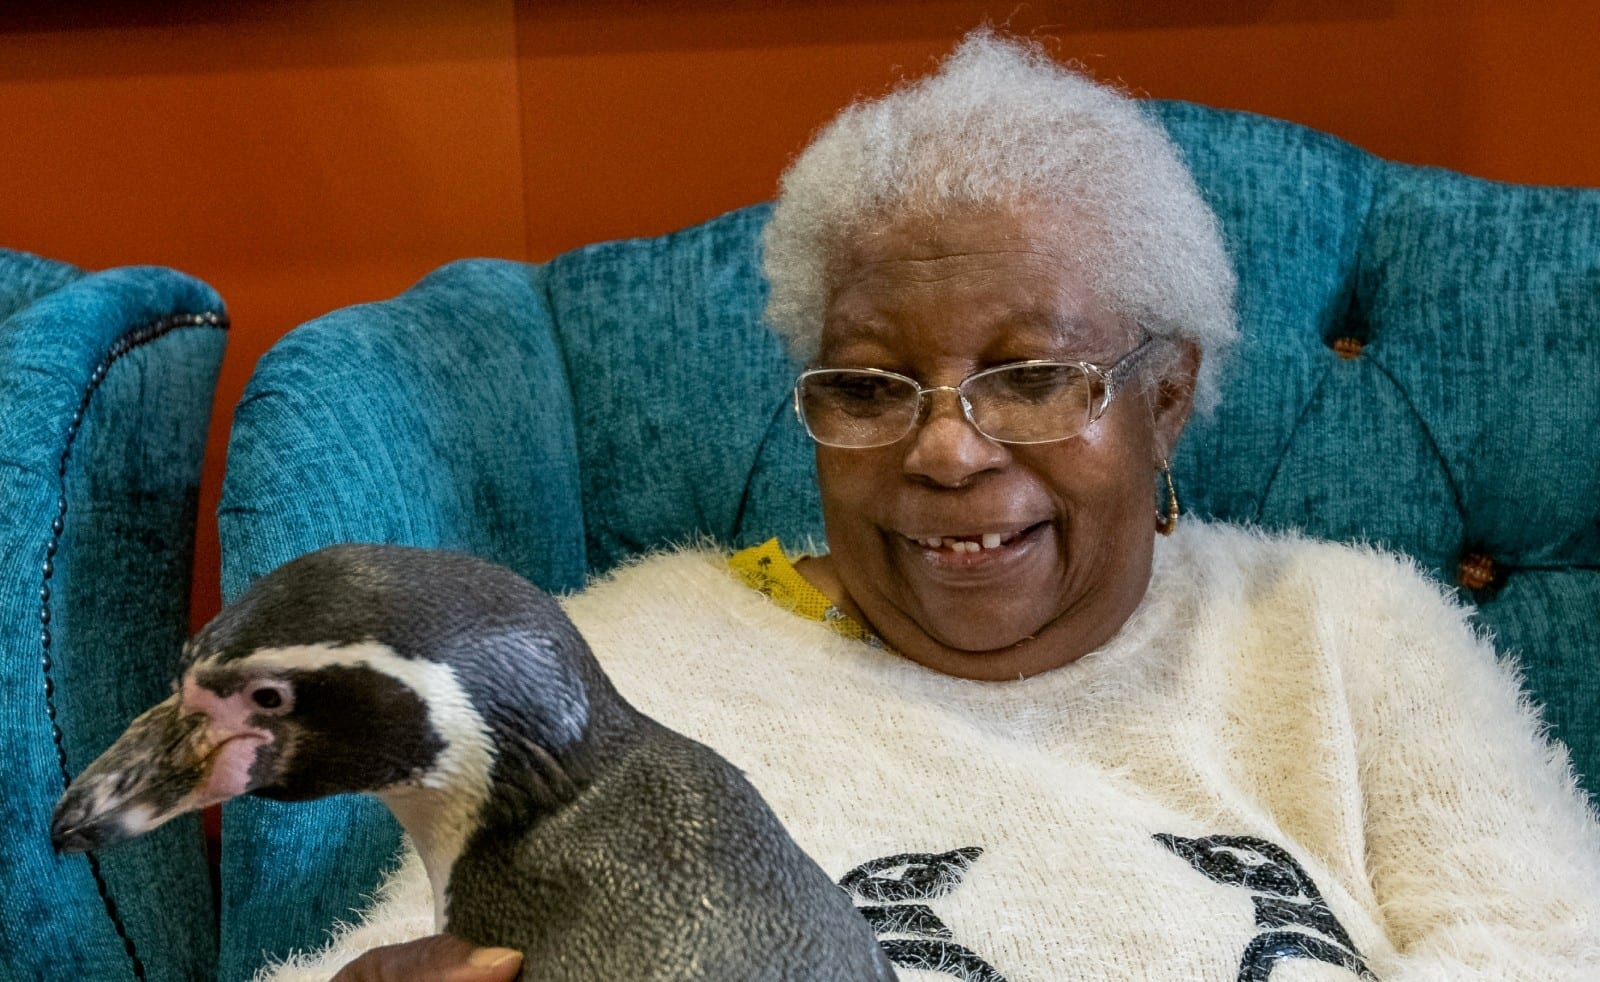 Dream Come True For 85-Year-Old As Penguins Pay Her Surprise Visit